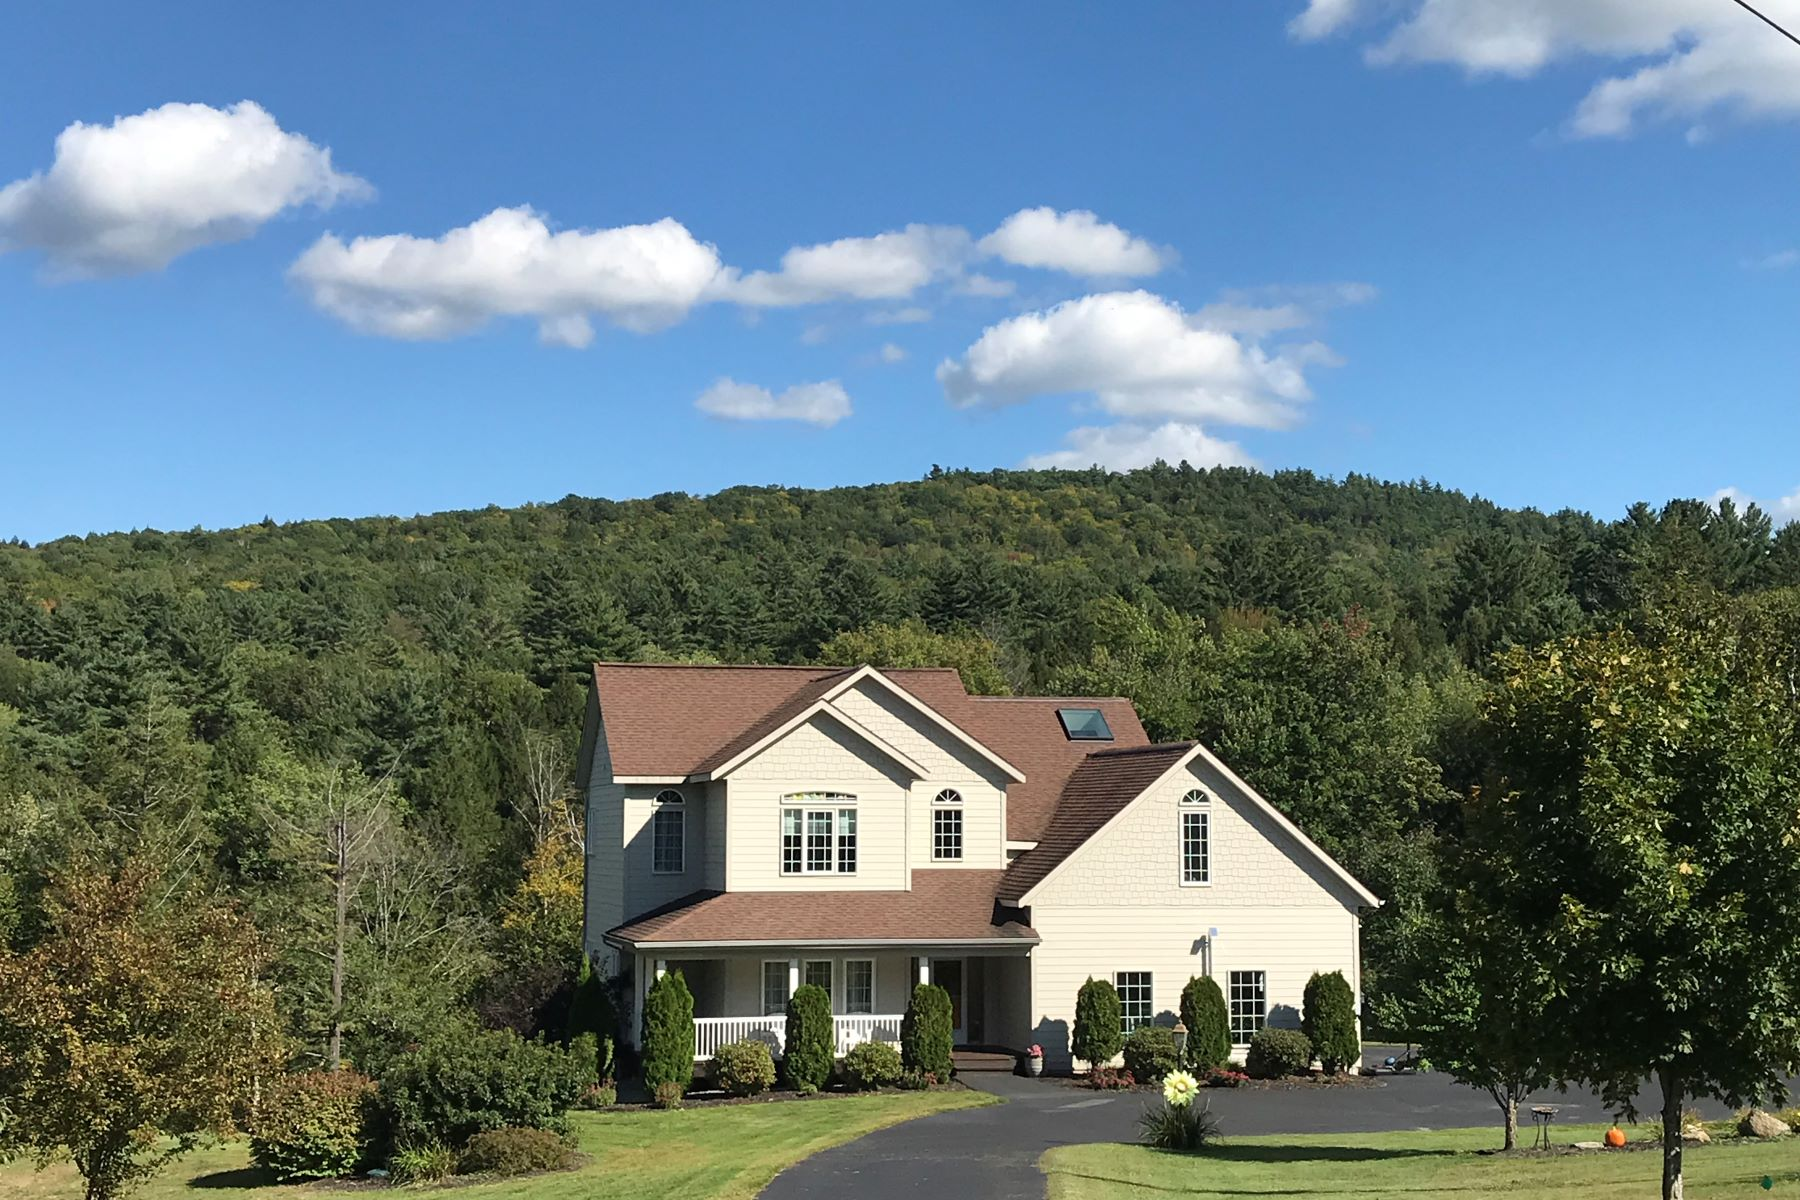 Single Family Home for Sale at Lovely Contemporary in Newport 28 River View St Newport, New Hampshire 03773 United States